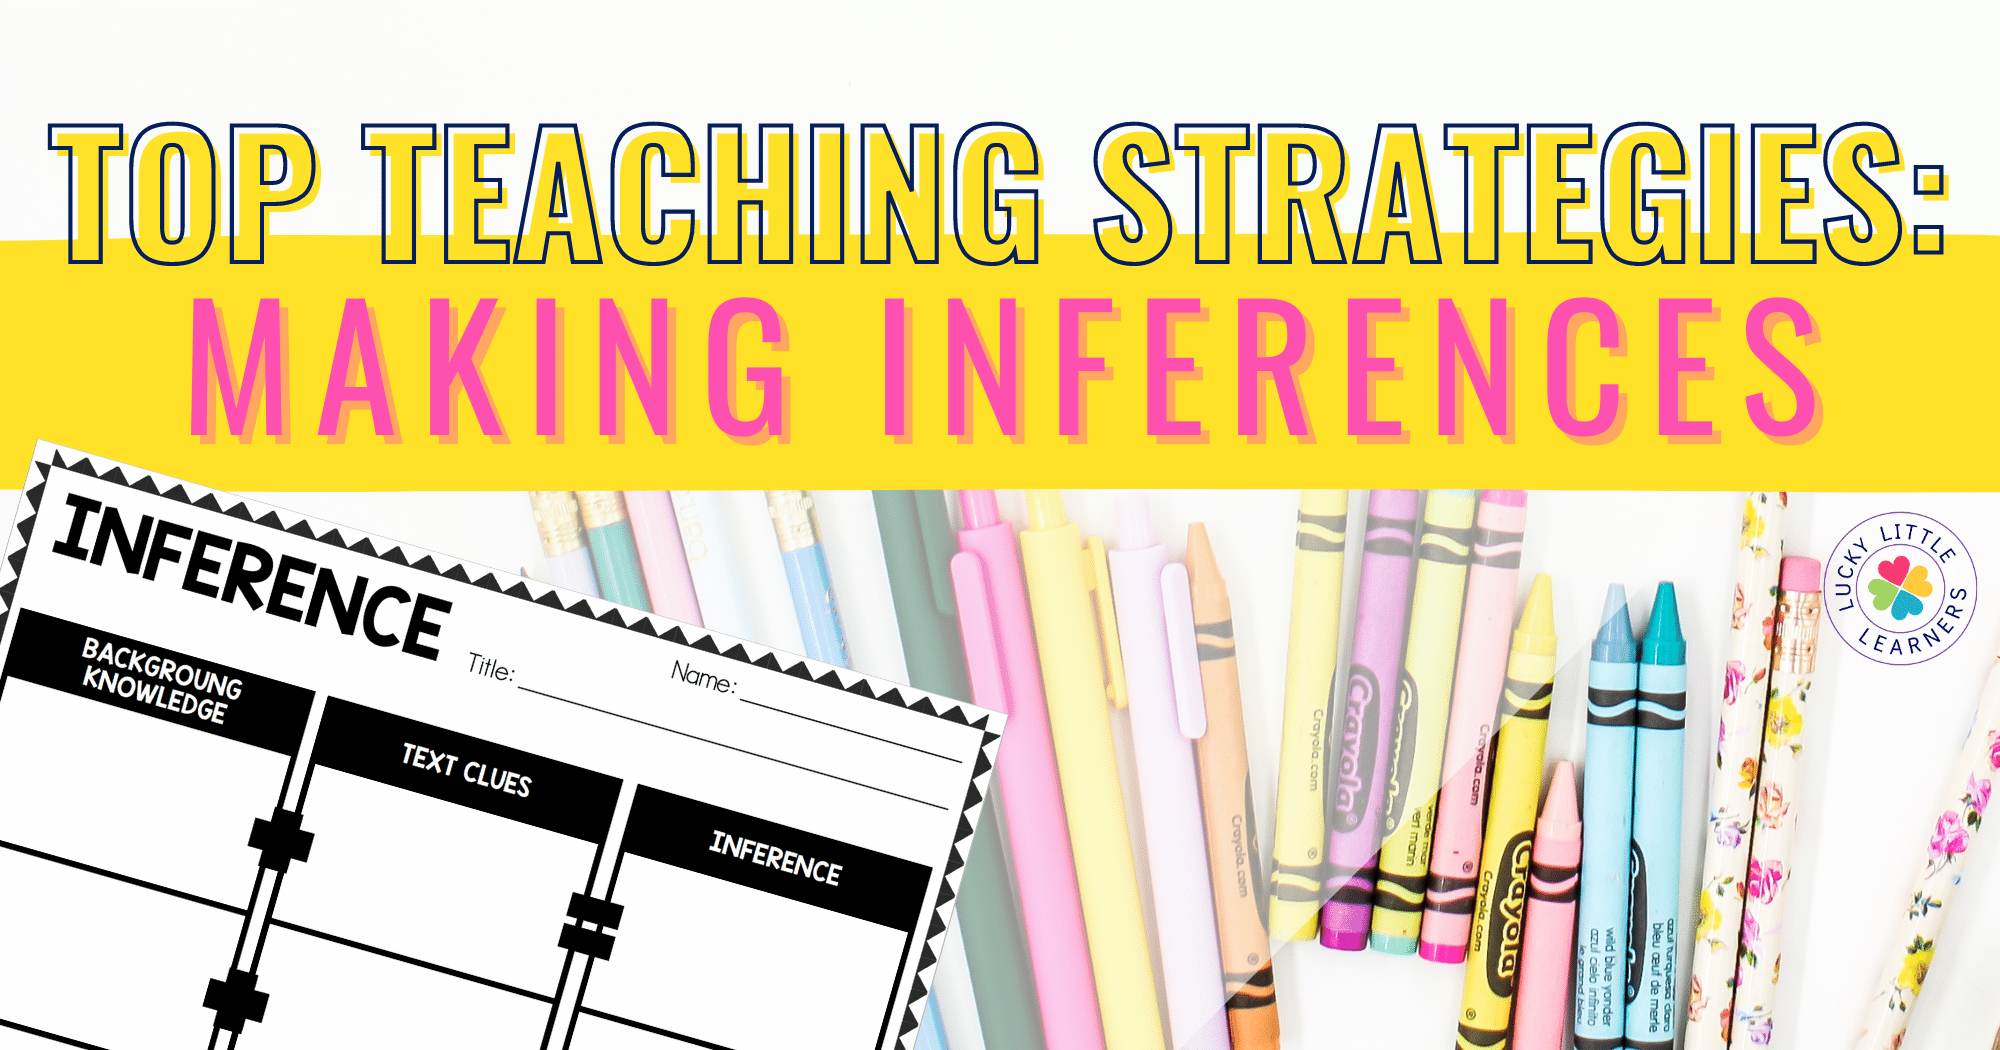 Top Teaching Strategies: Making Inferences